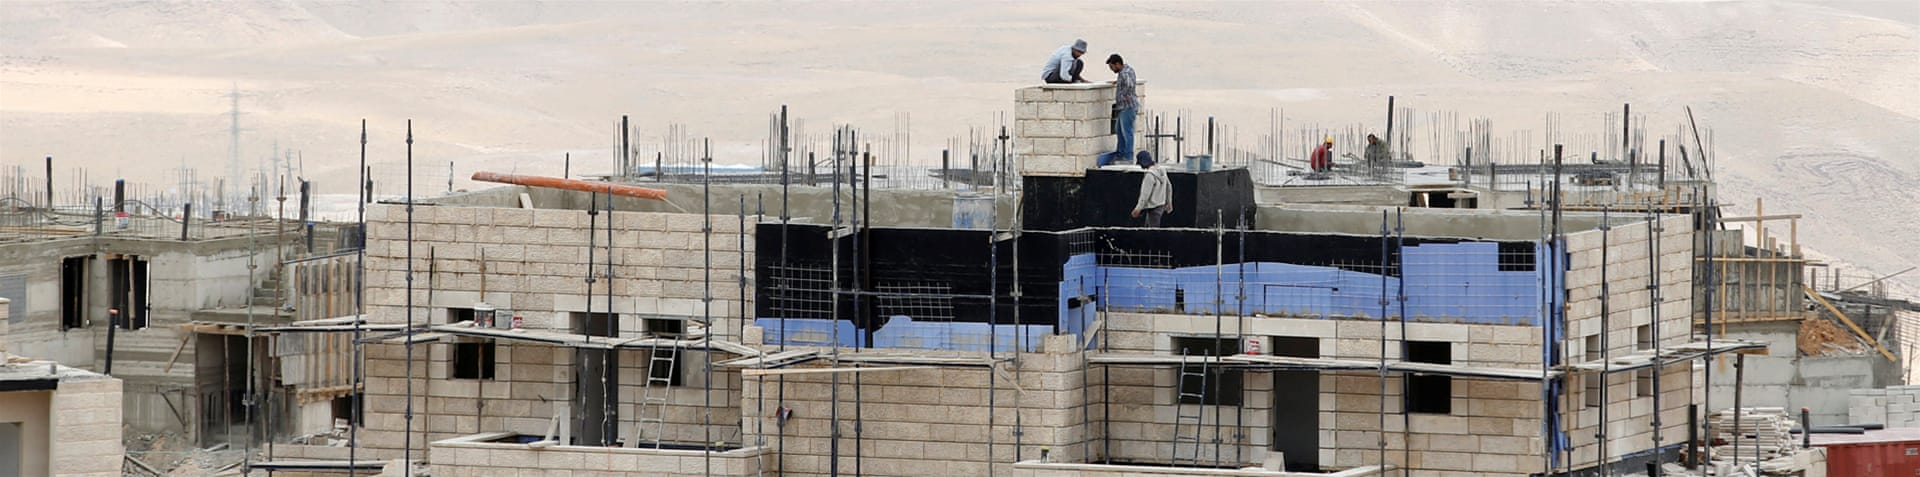 The planned homes are part of a larger expansion of 1,600 new settler units [File: AP]